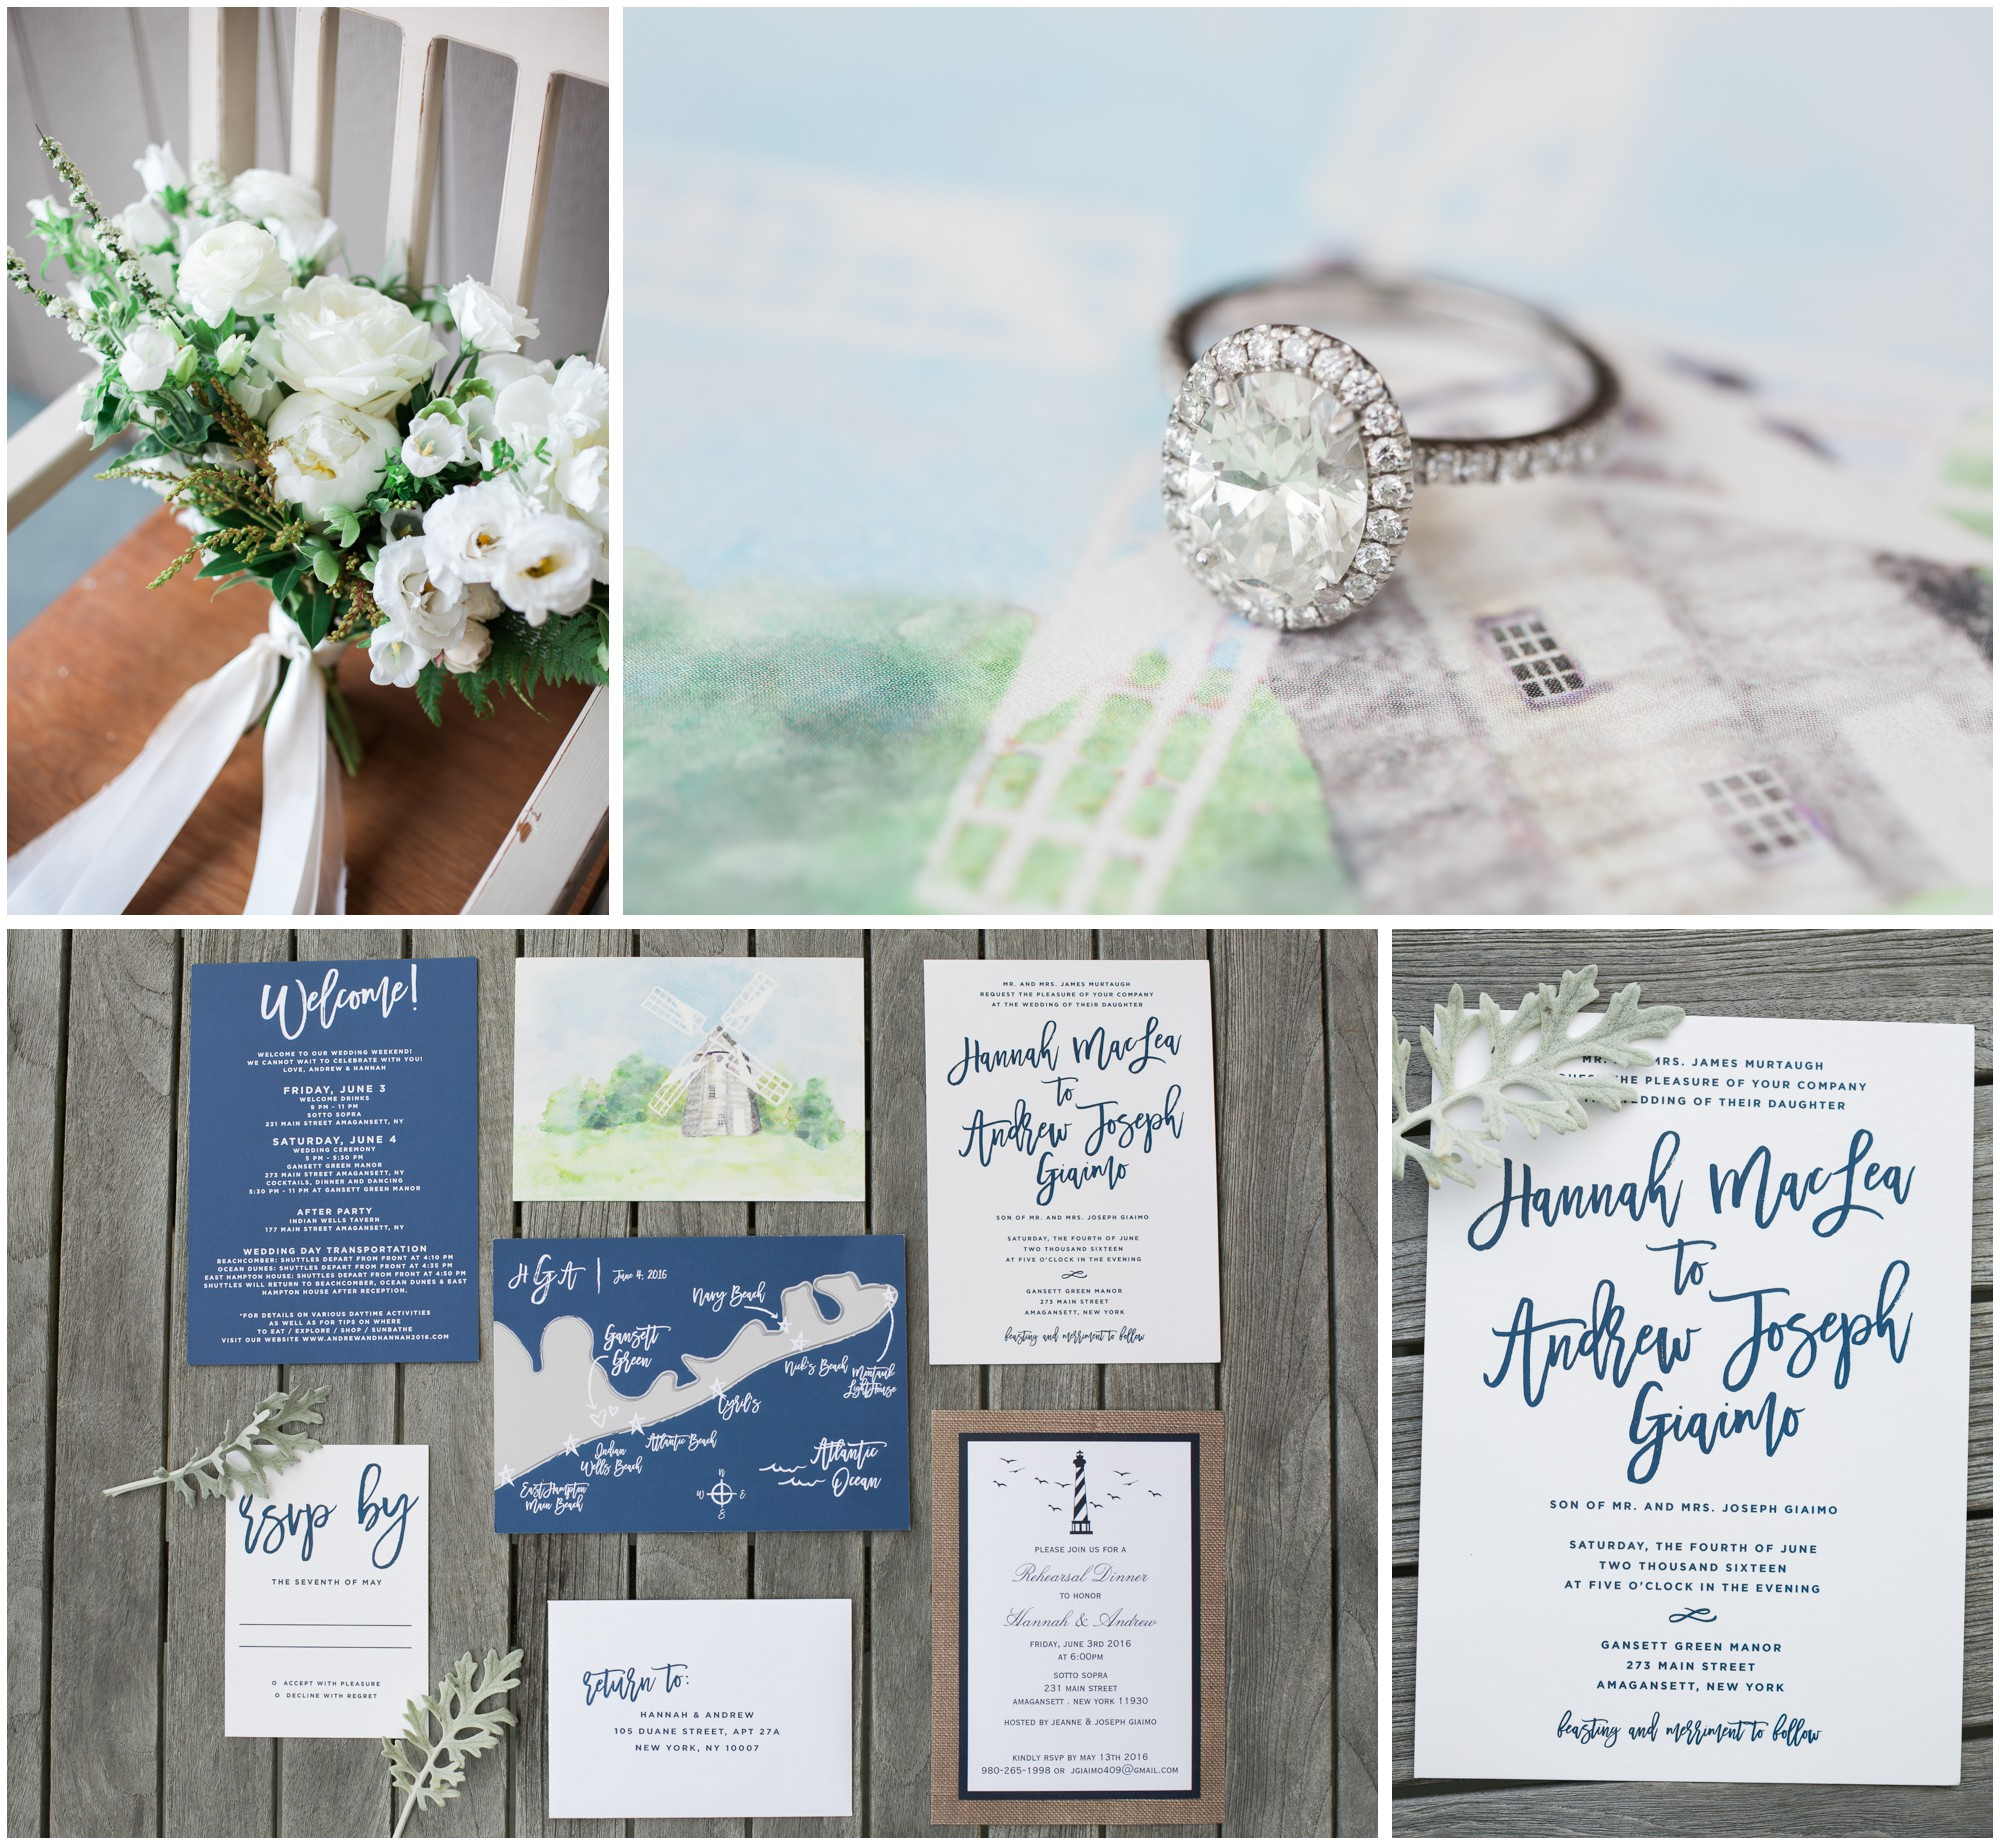 details of a wedding including rings, invitations, and bouquets for a wedding in amagansett long island